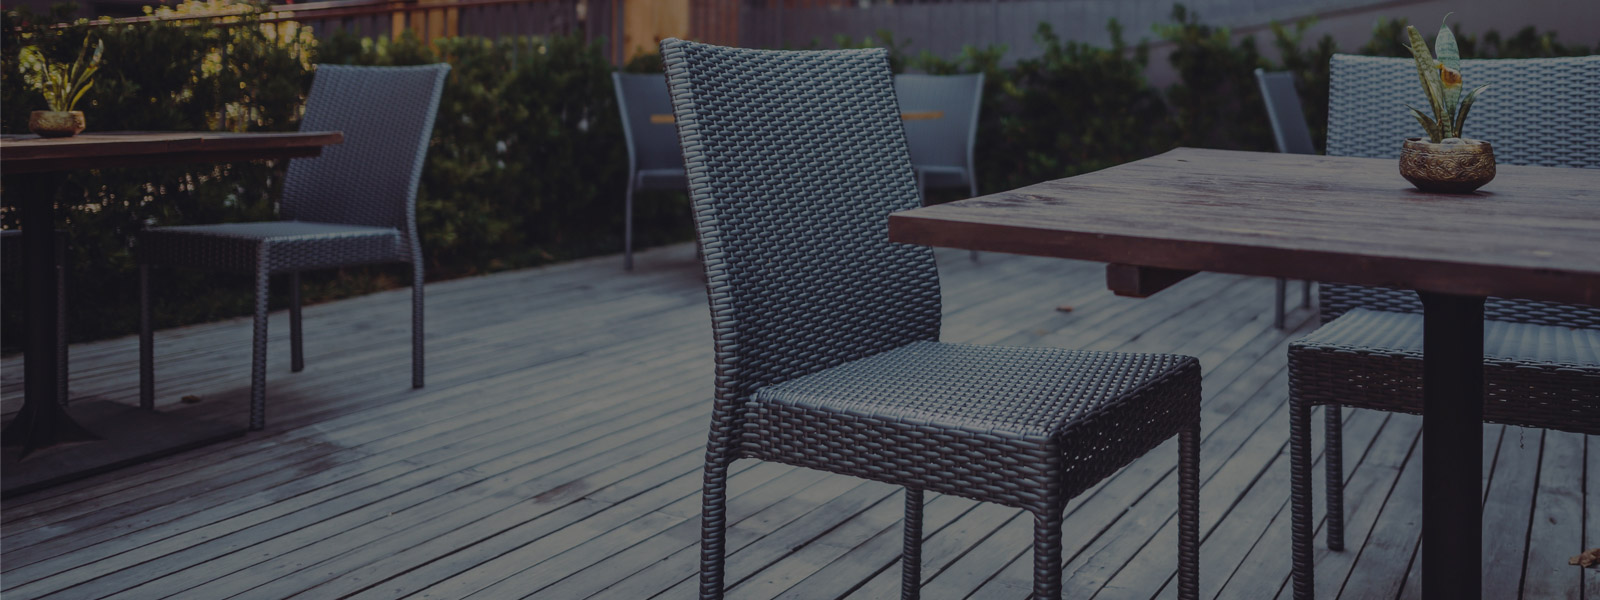 Commercial Outdoor Furniture Patio Tables Chairs More - Outdoor Furniture Clearance Outlet Penrith